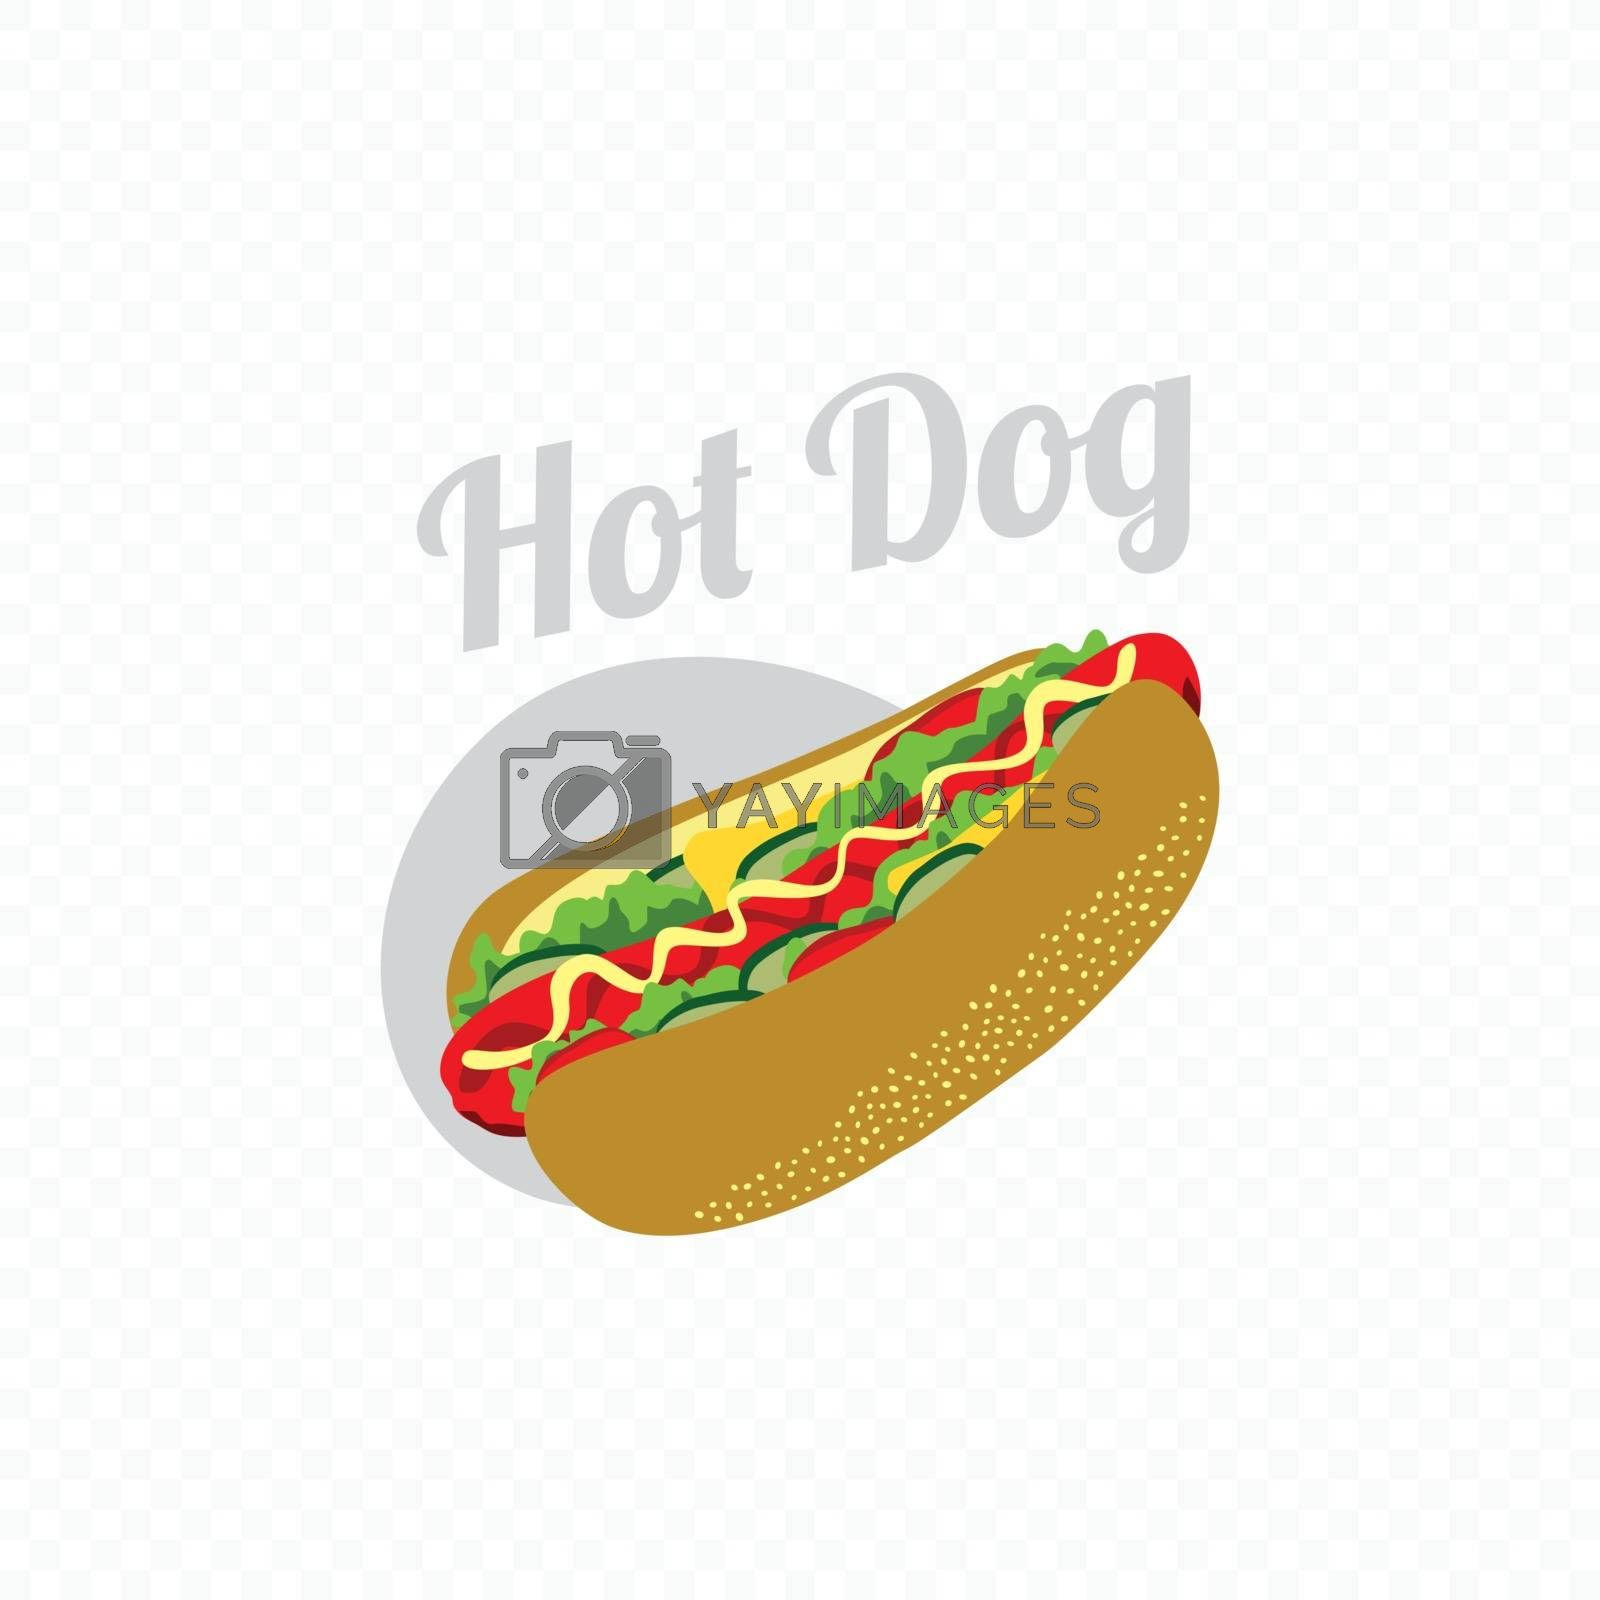 food and drink theme vector design art graphic illustration